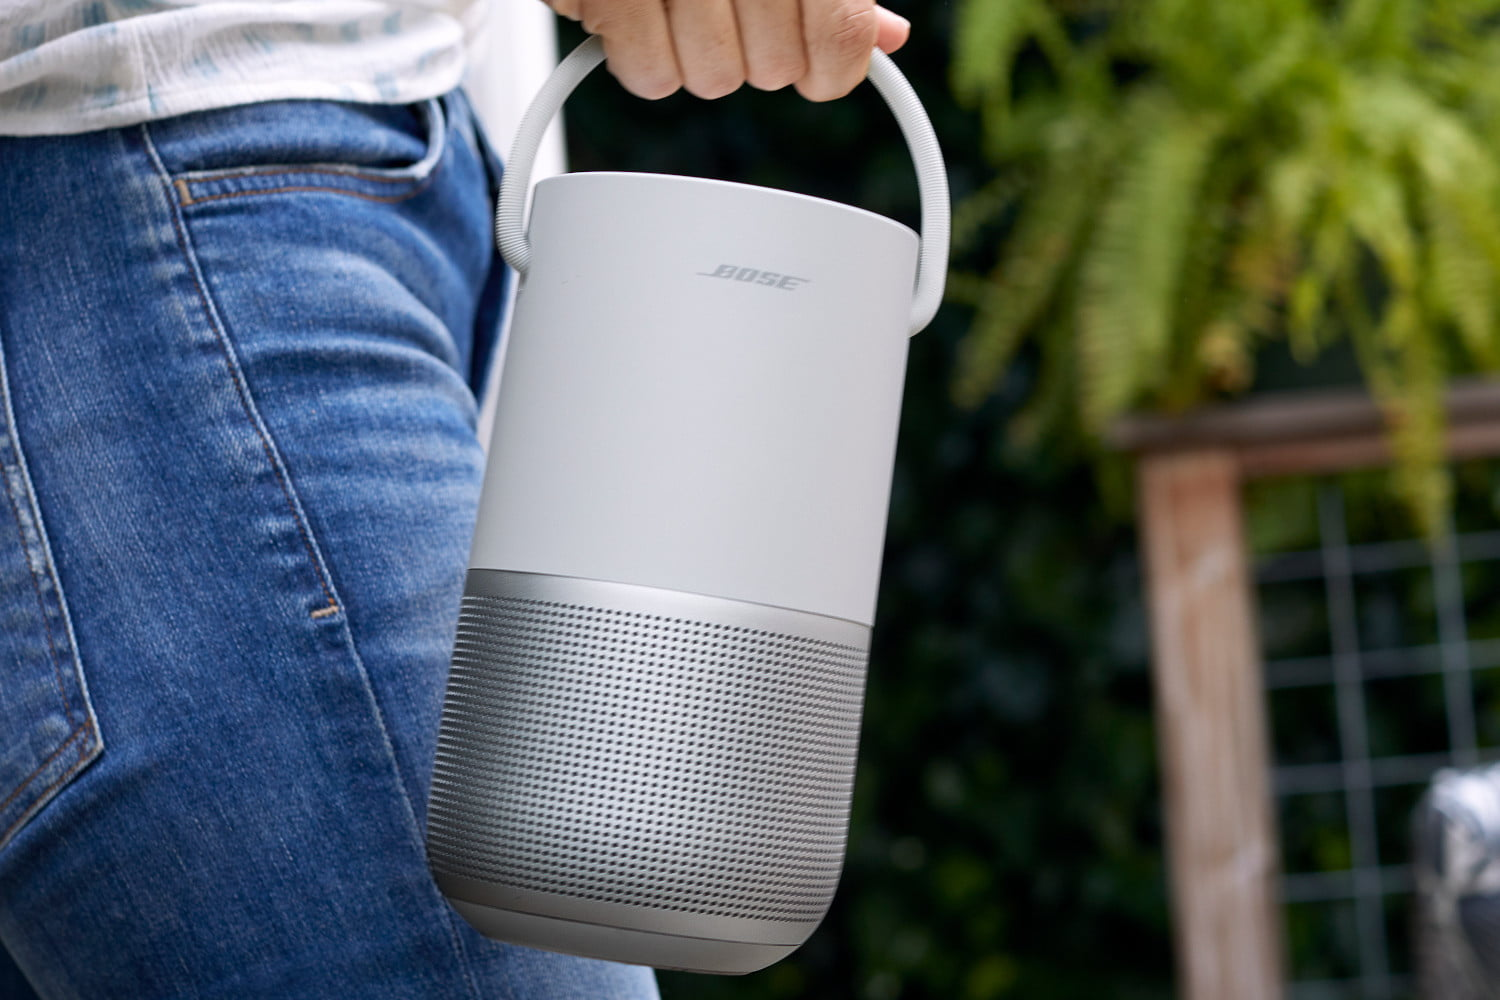 Bose's $349 portable smart speaker with Bluetooth aims to steal Sonos' thunder